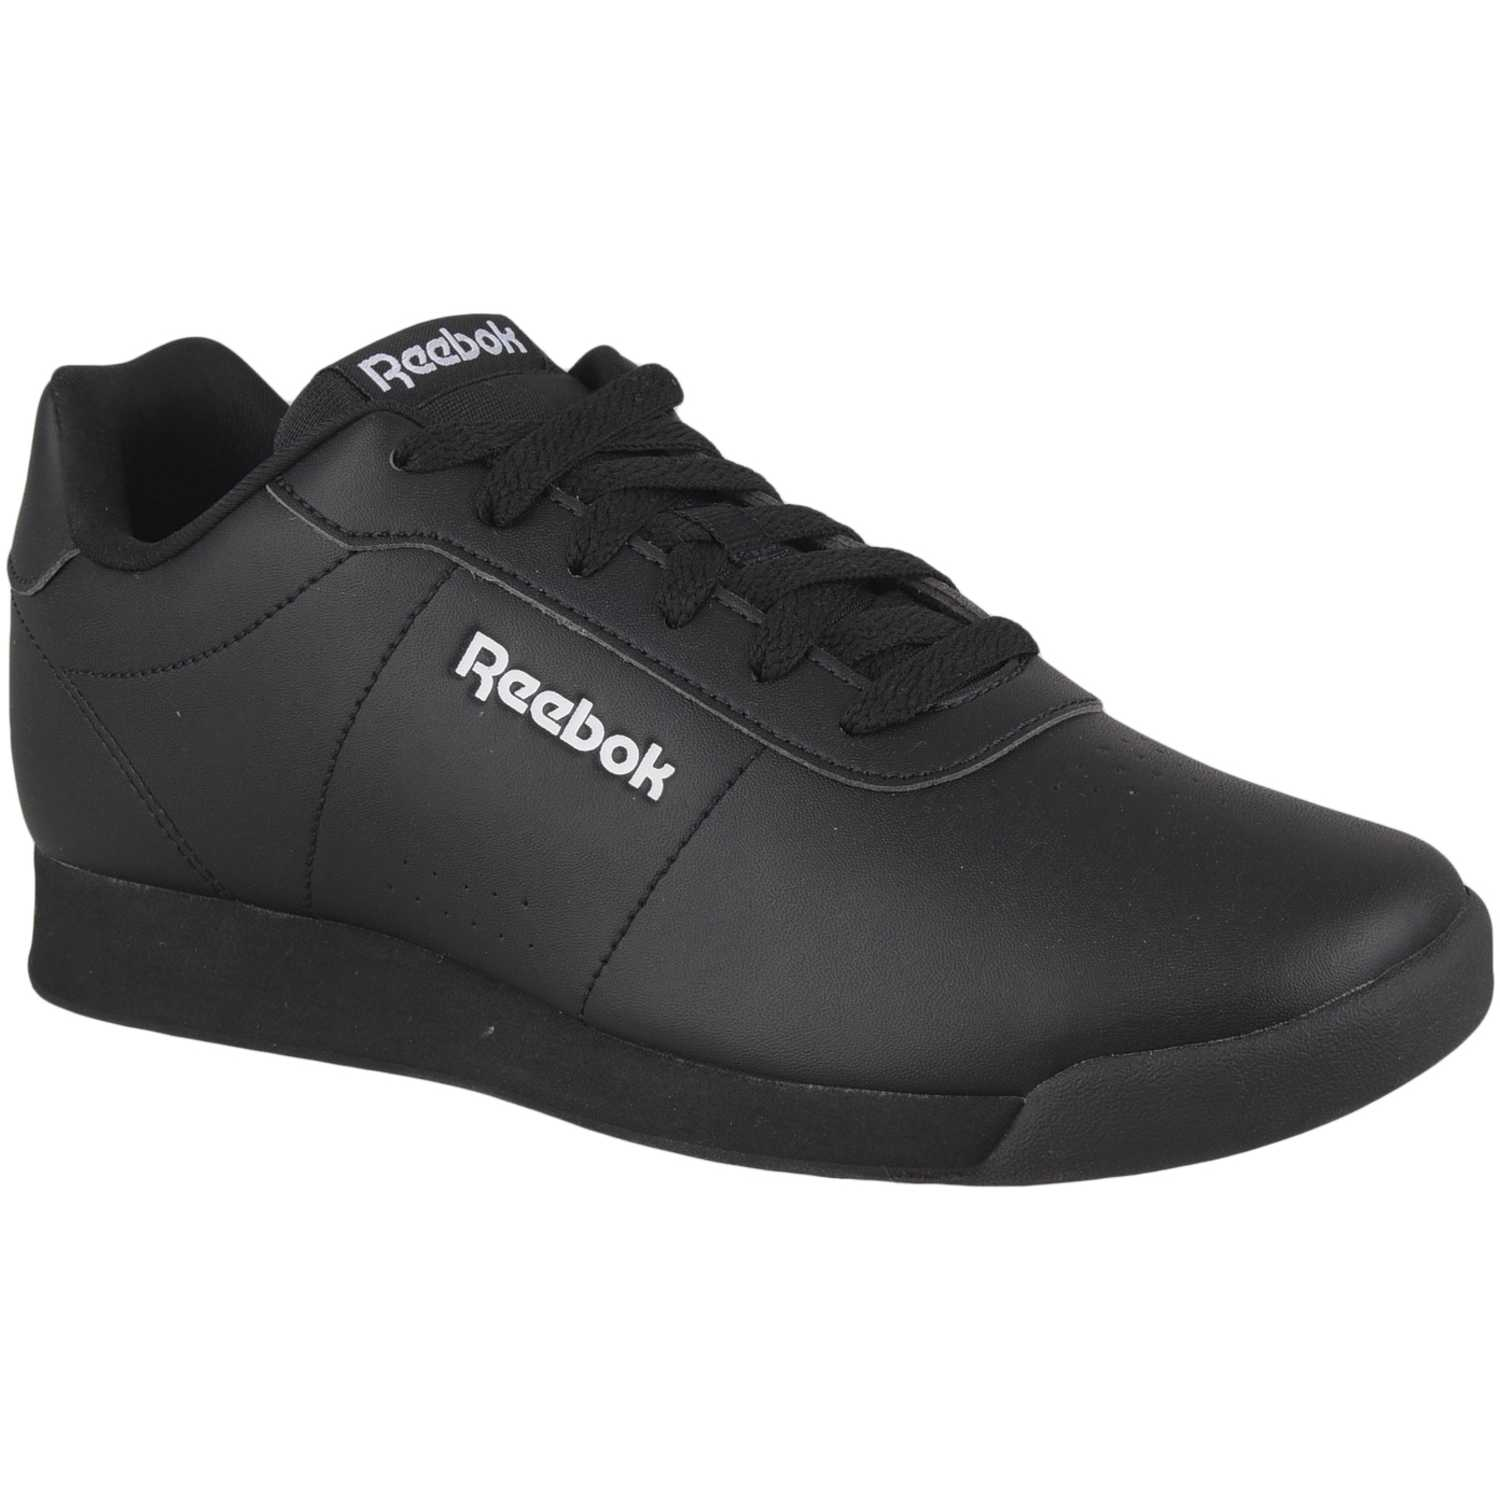 Reebok reebok royal charm Negro Walking